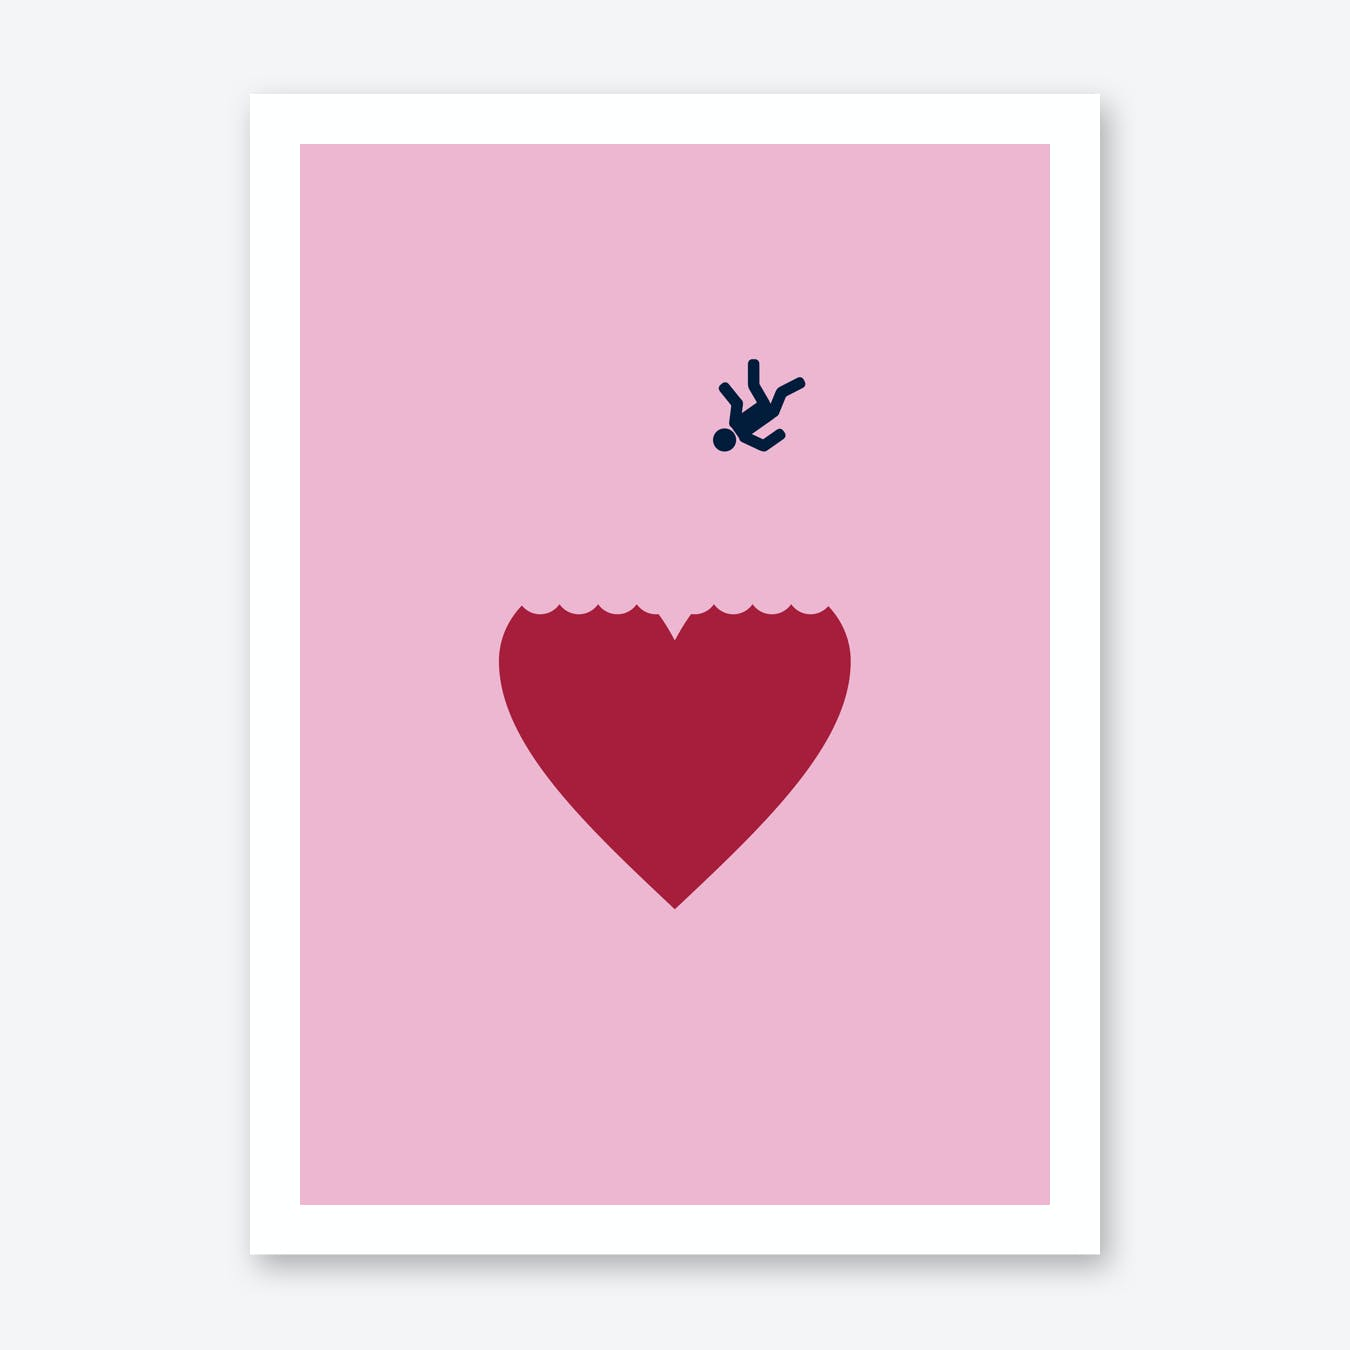 Fallen In Love Art Print